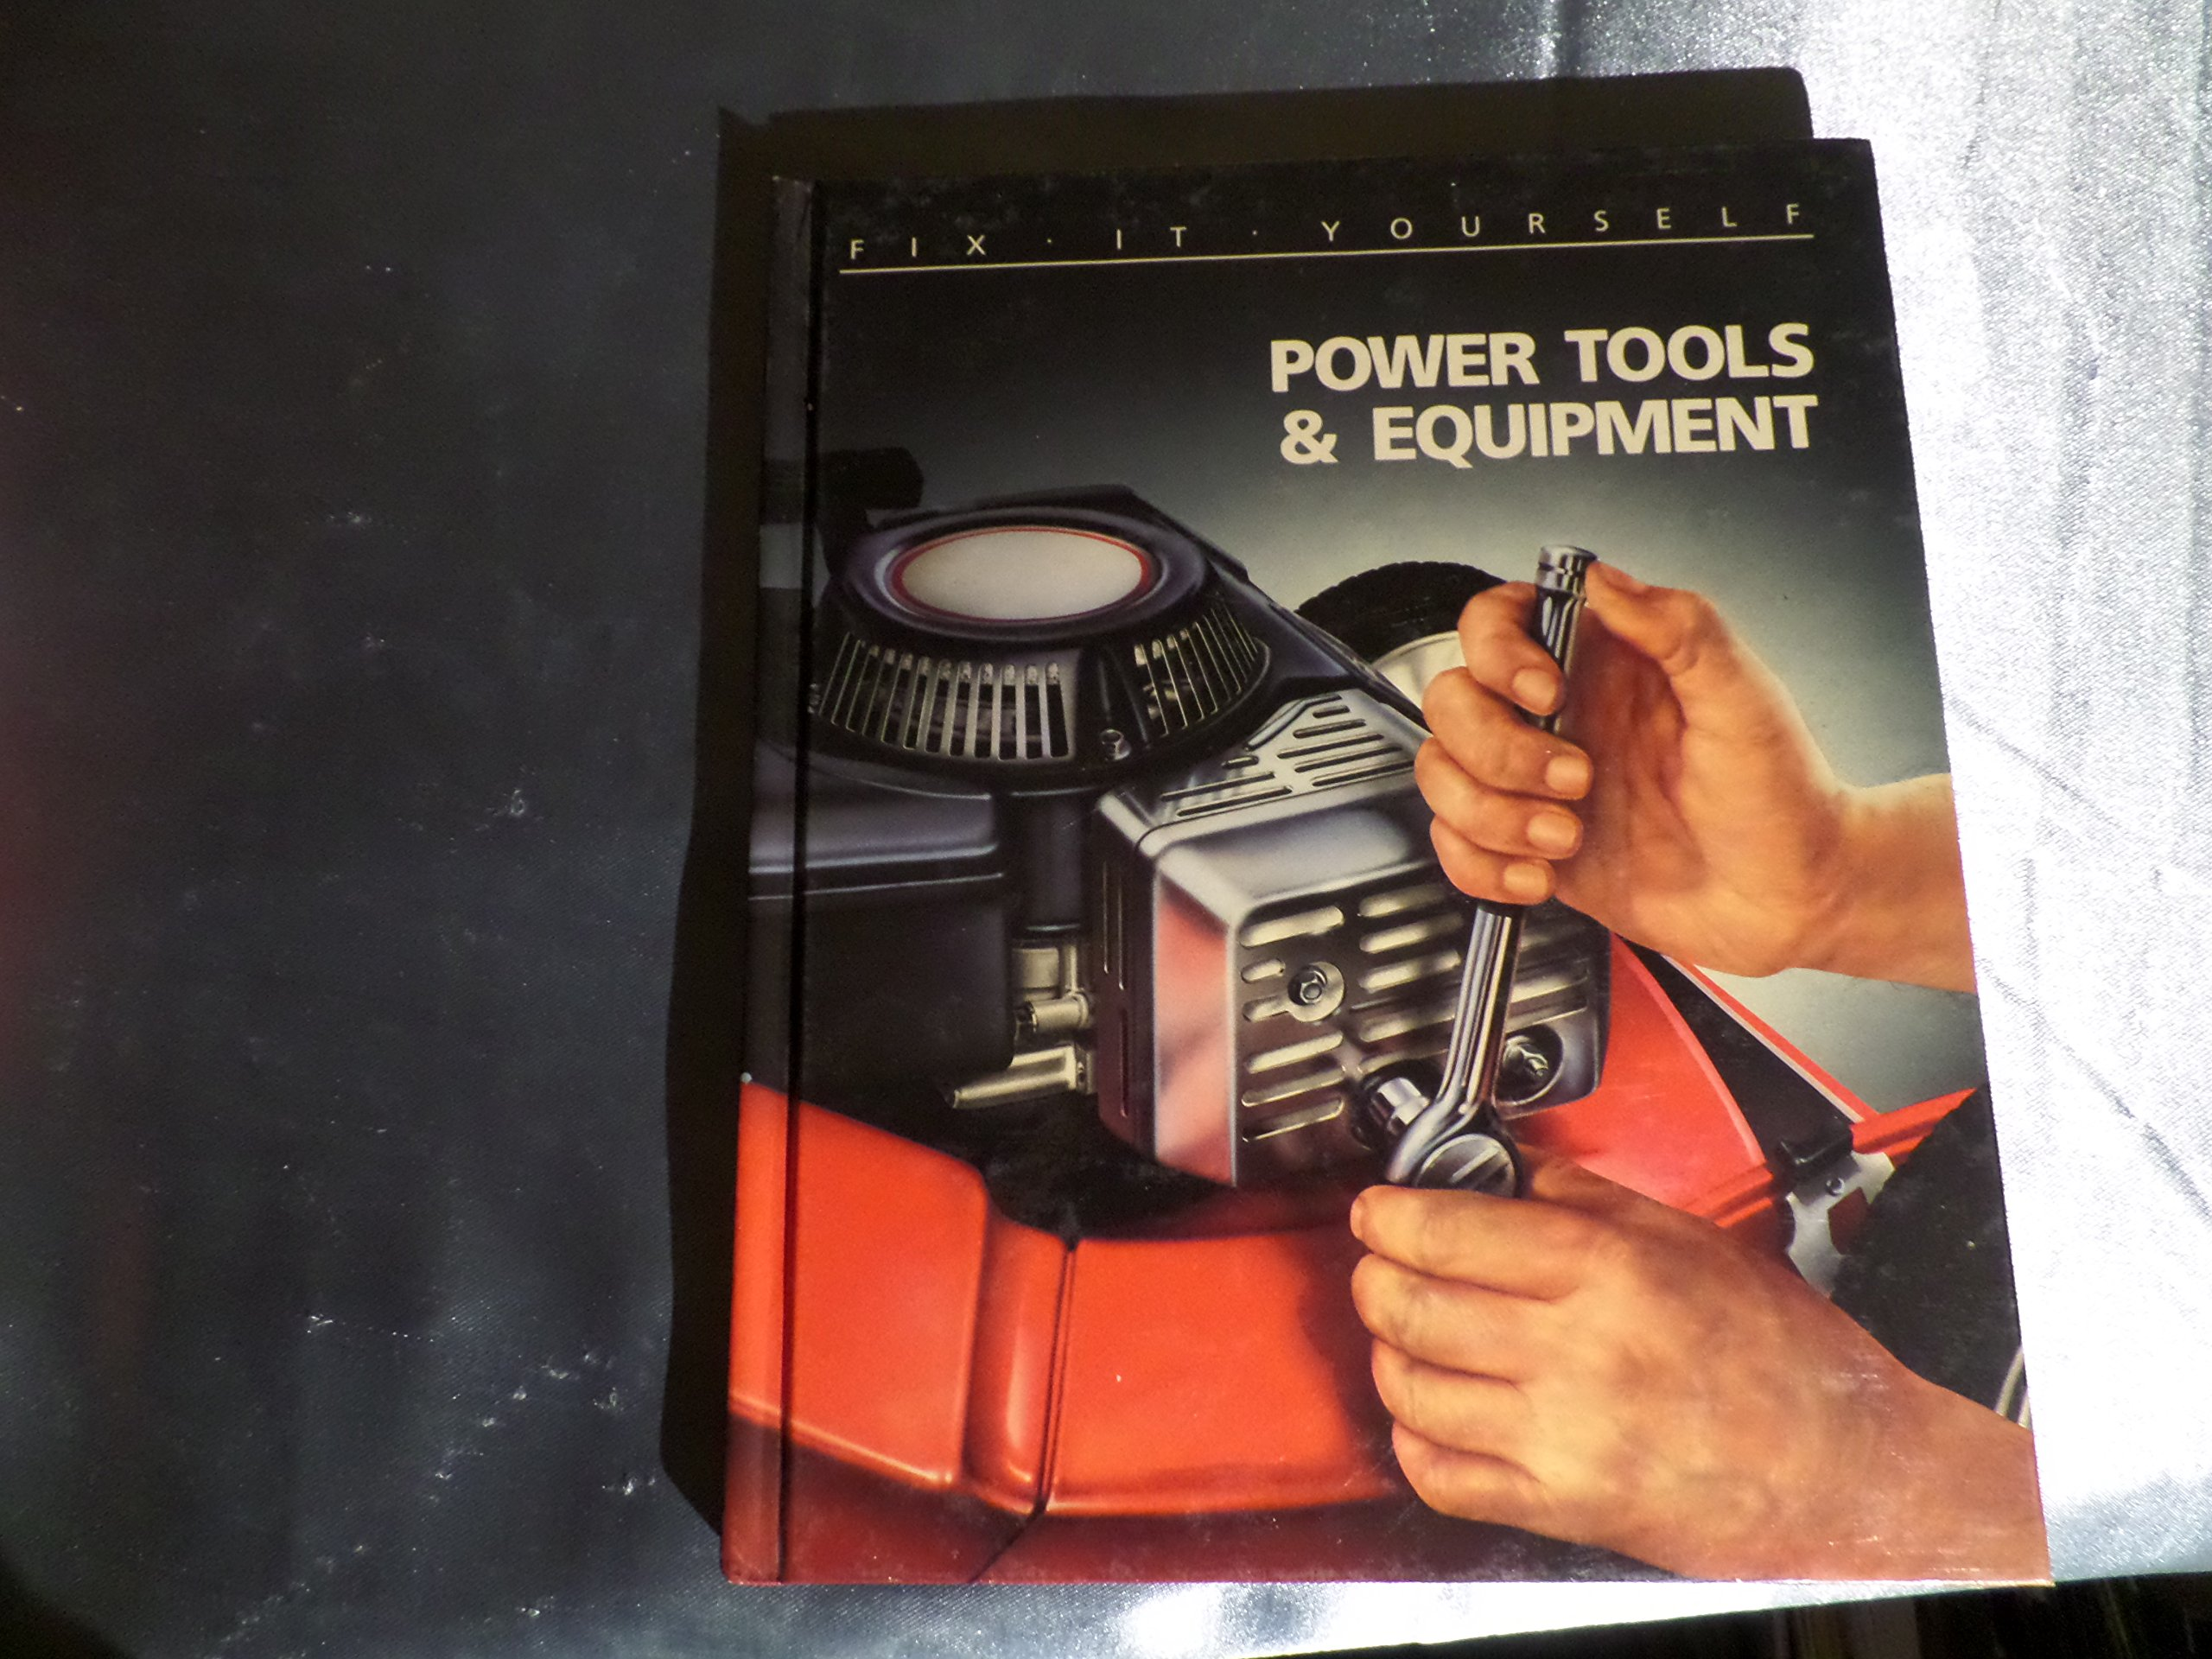 Power Tools and Equipment (FIX-IT-YOURSELF)